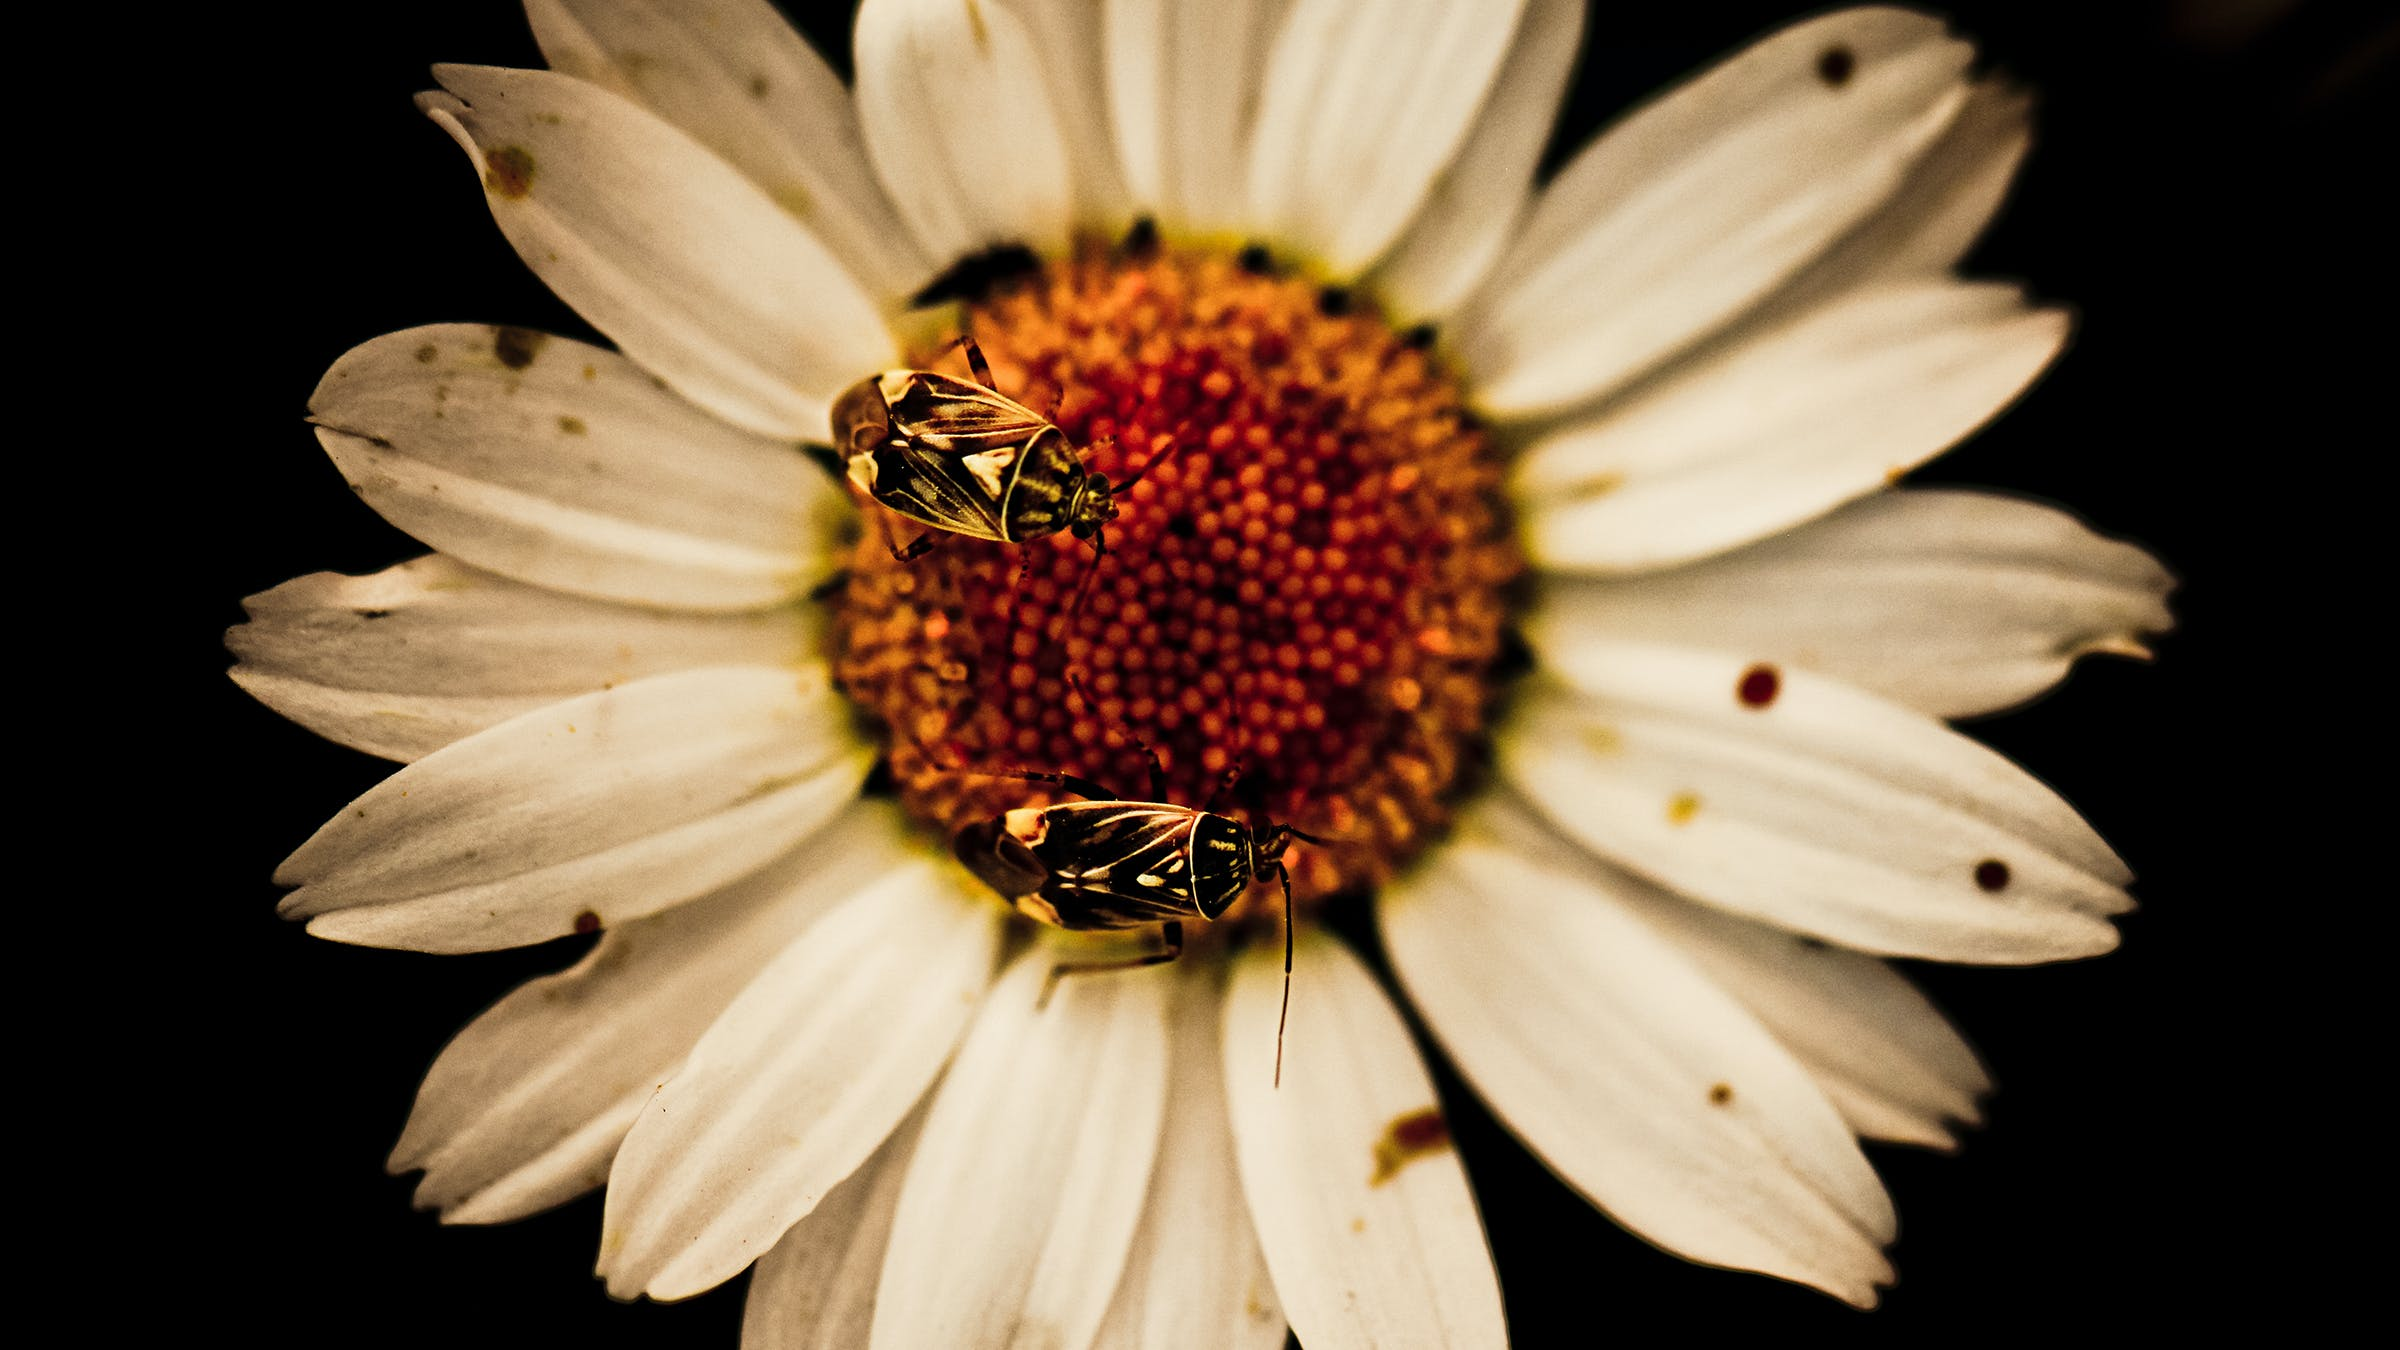 Two Flies on White Daisy Flowers